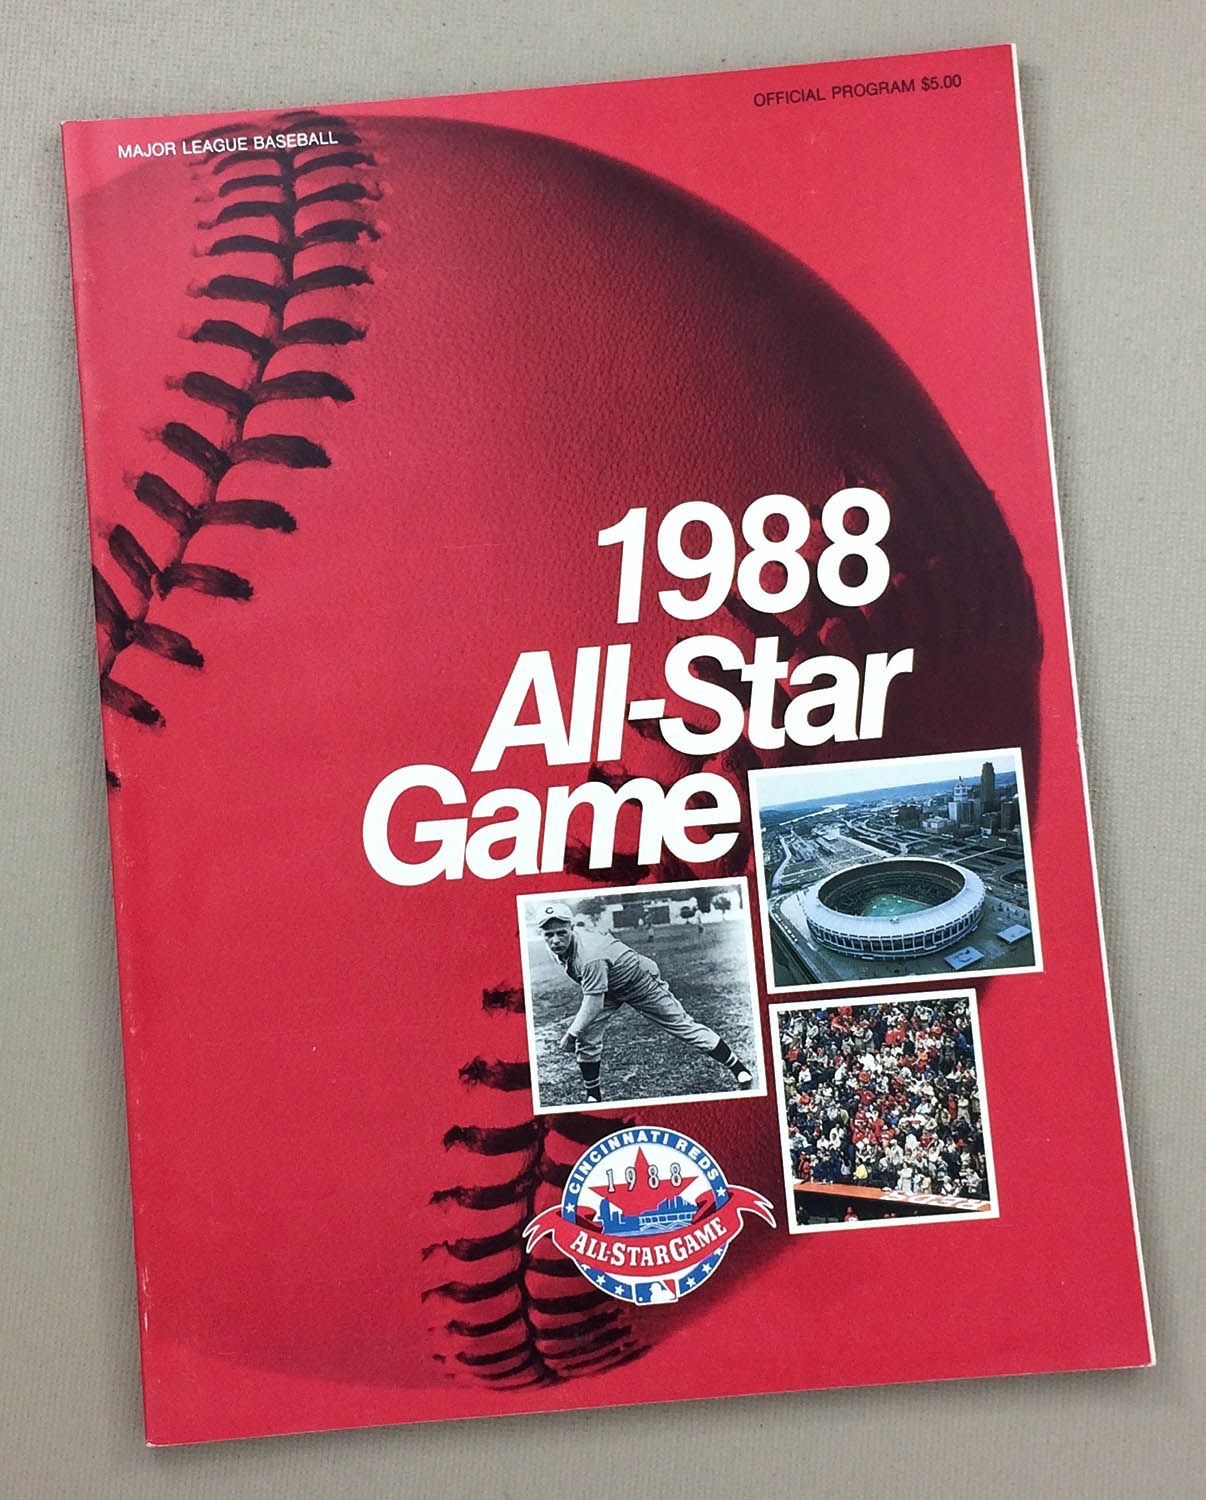 1988 Major League Baseball All-Star Game Program